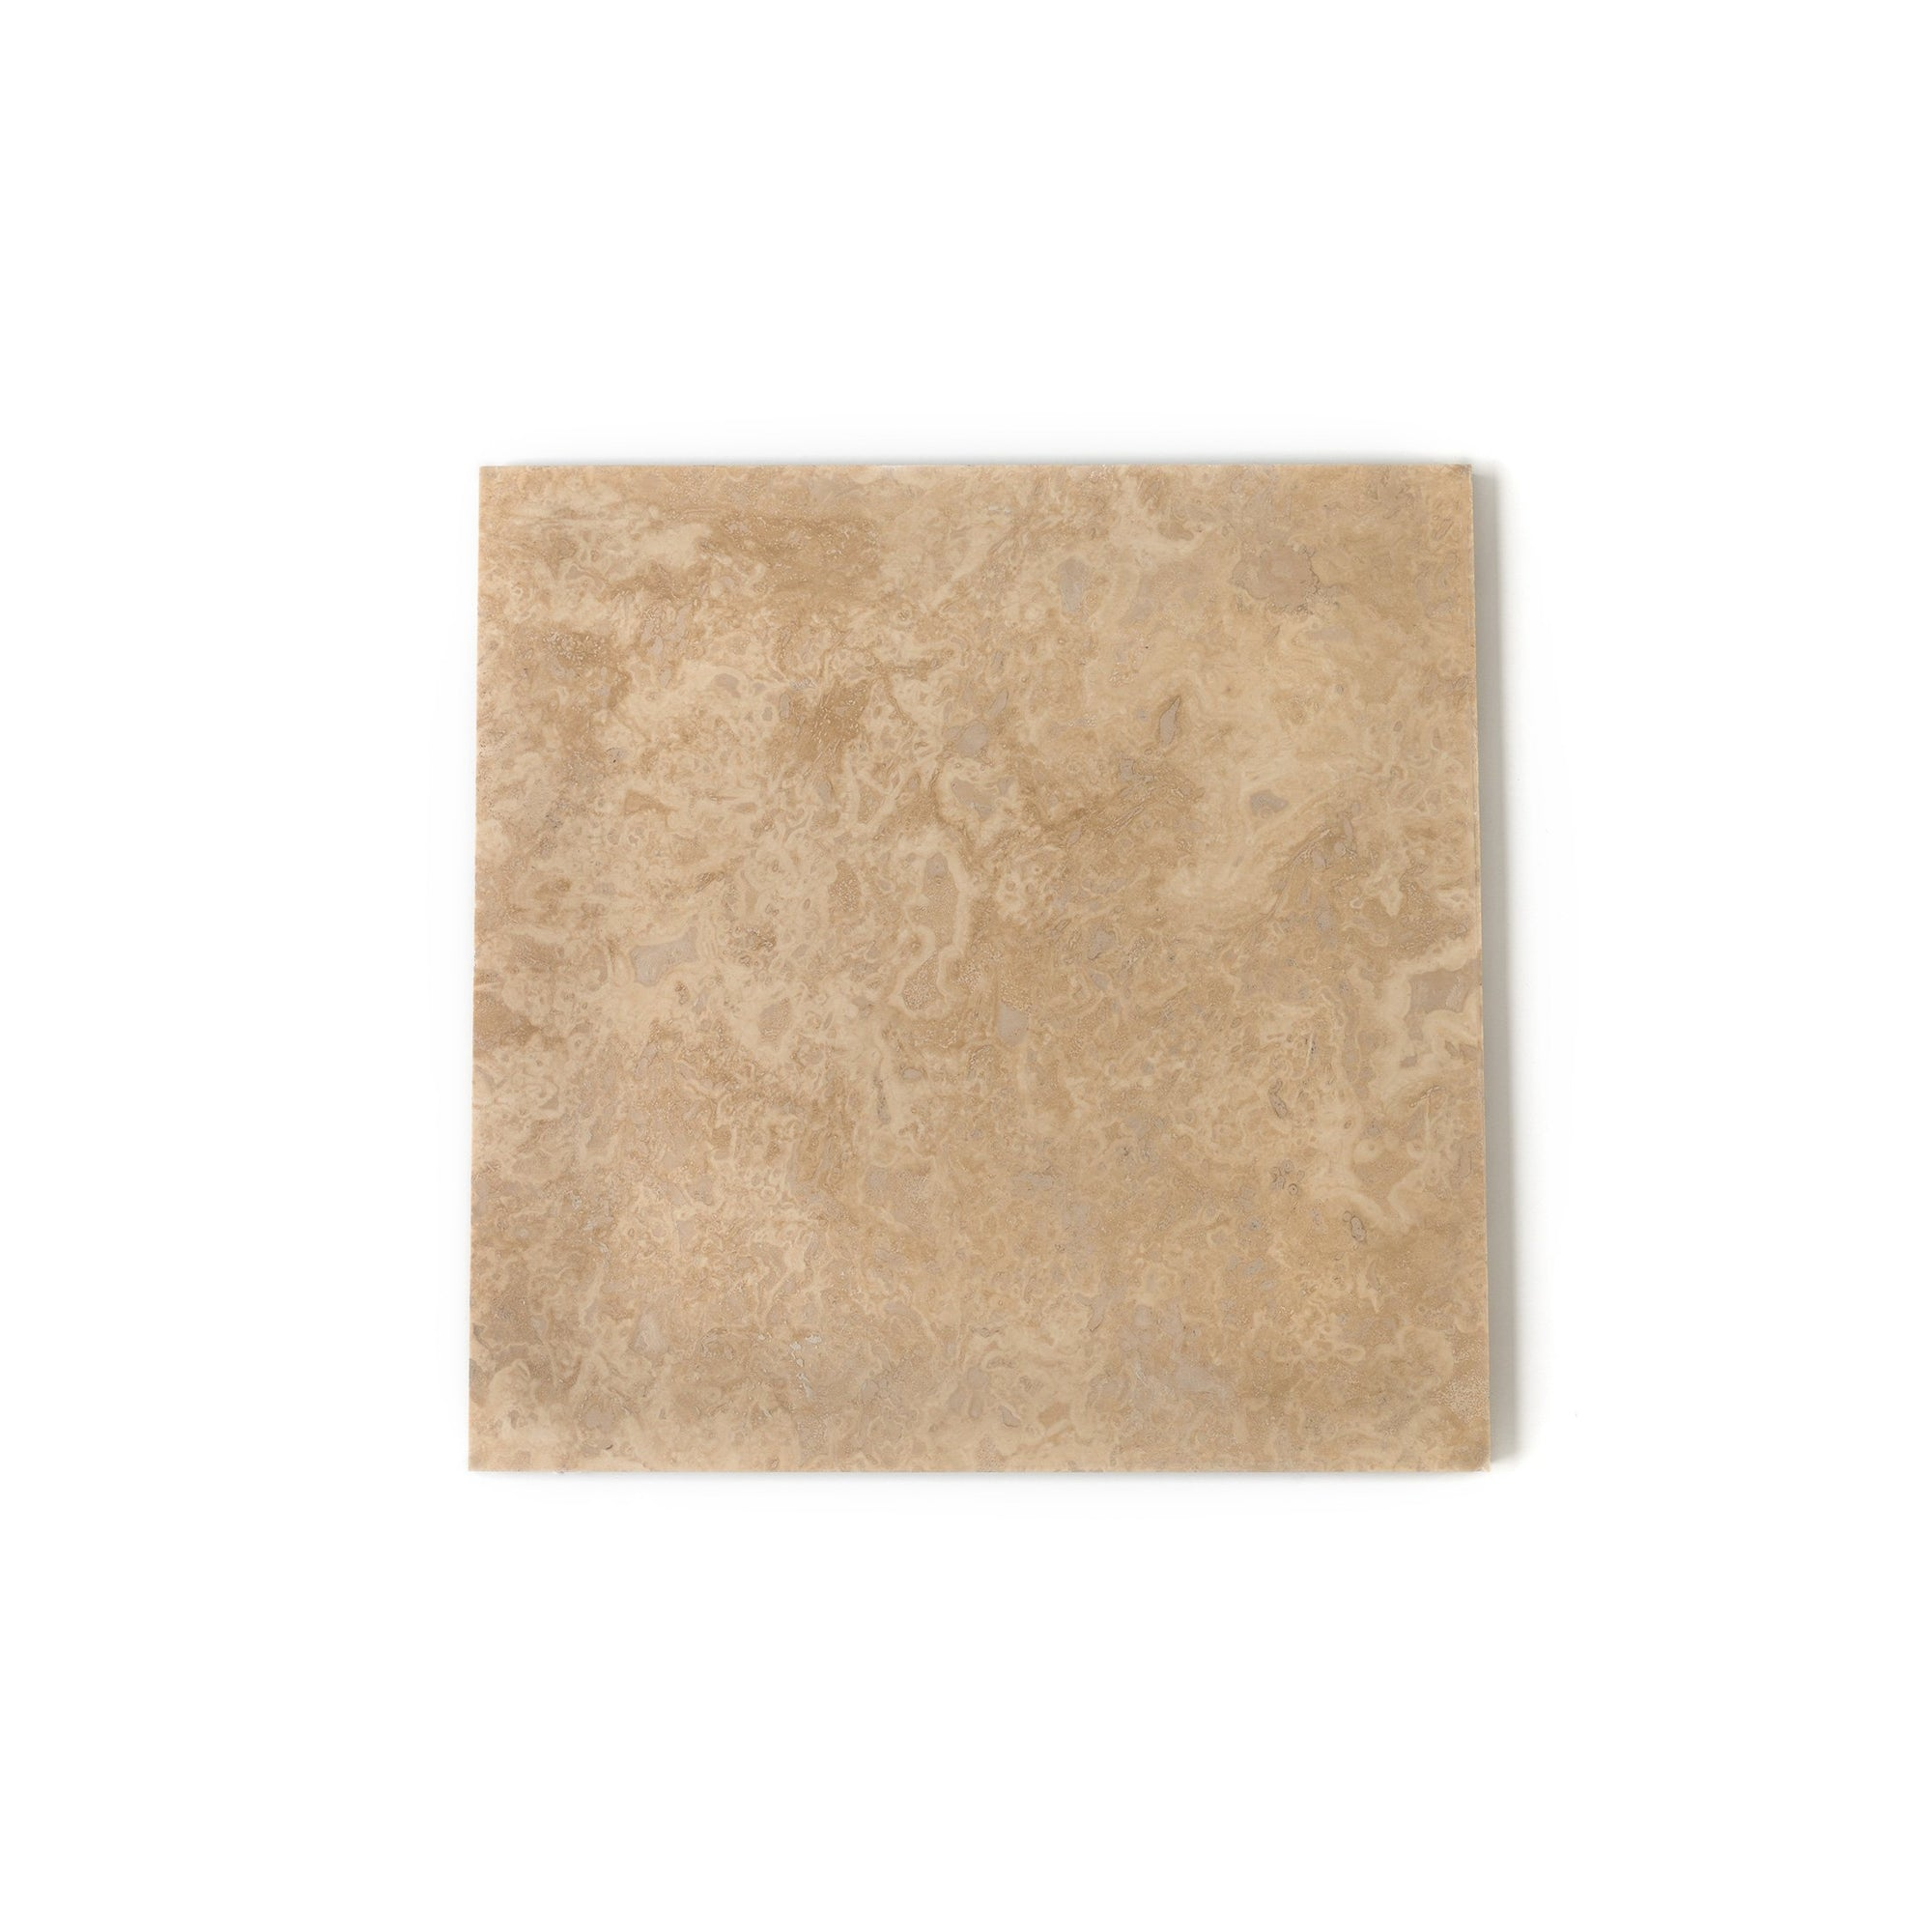 Classic Cream 406x406mm Travertine Tile